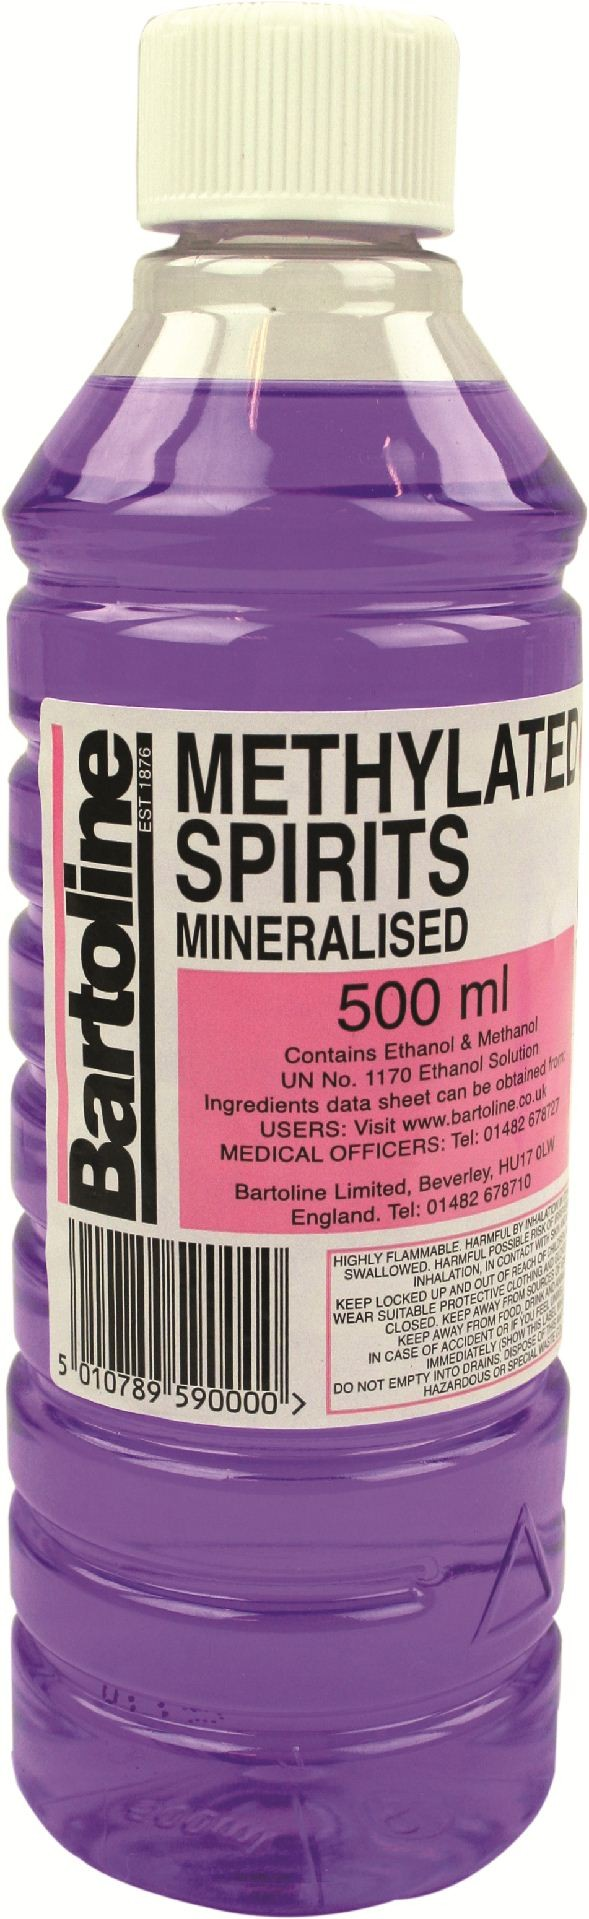 Highlander 500ml Methylated Spirit  Image